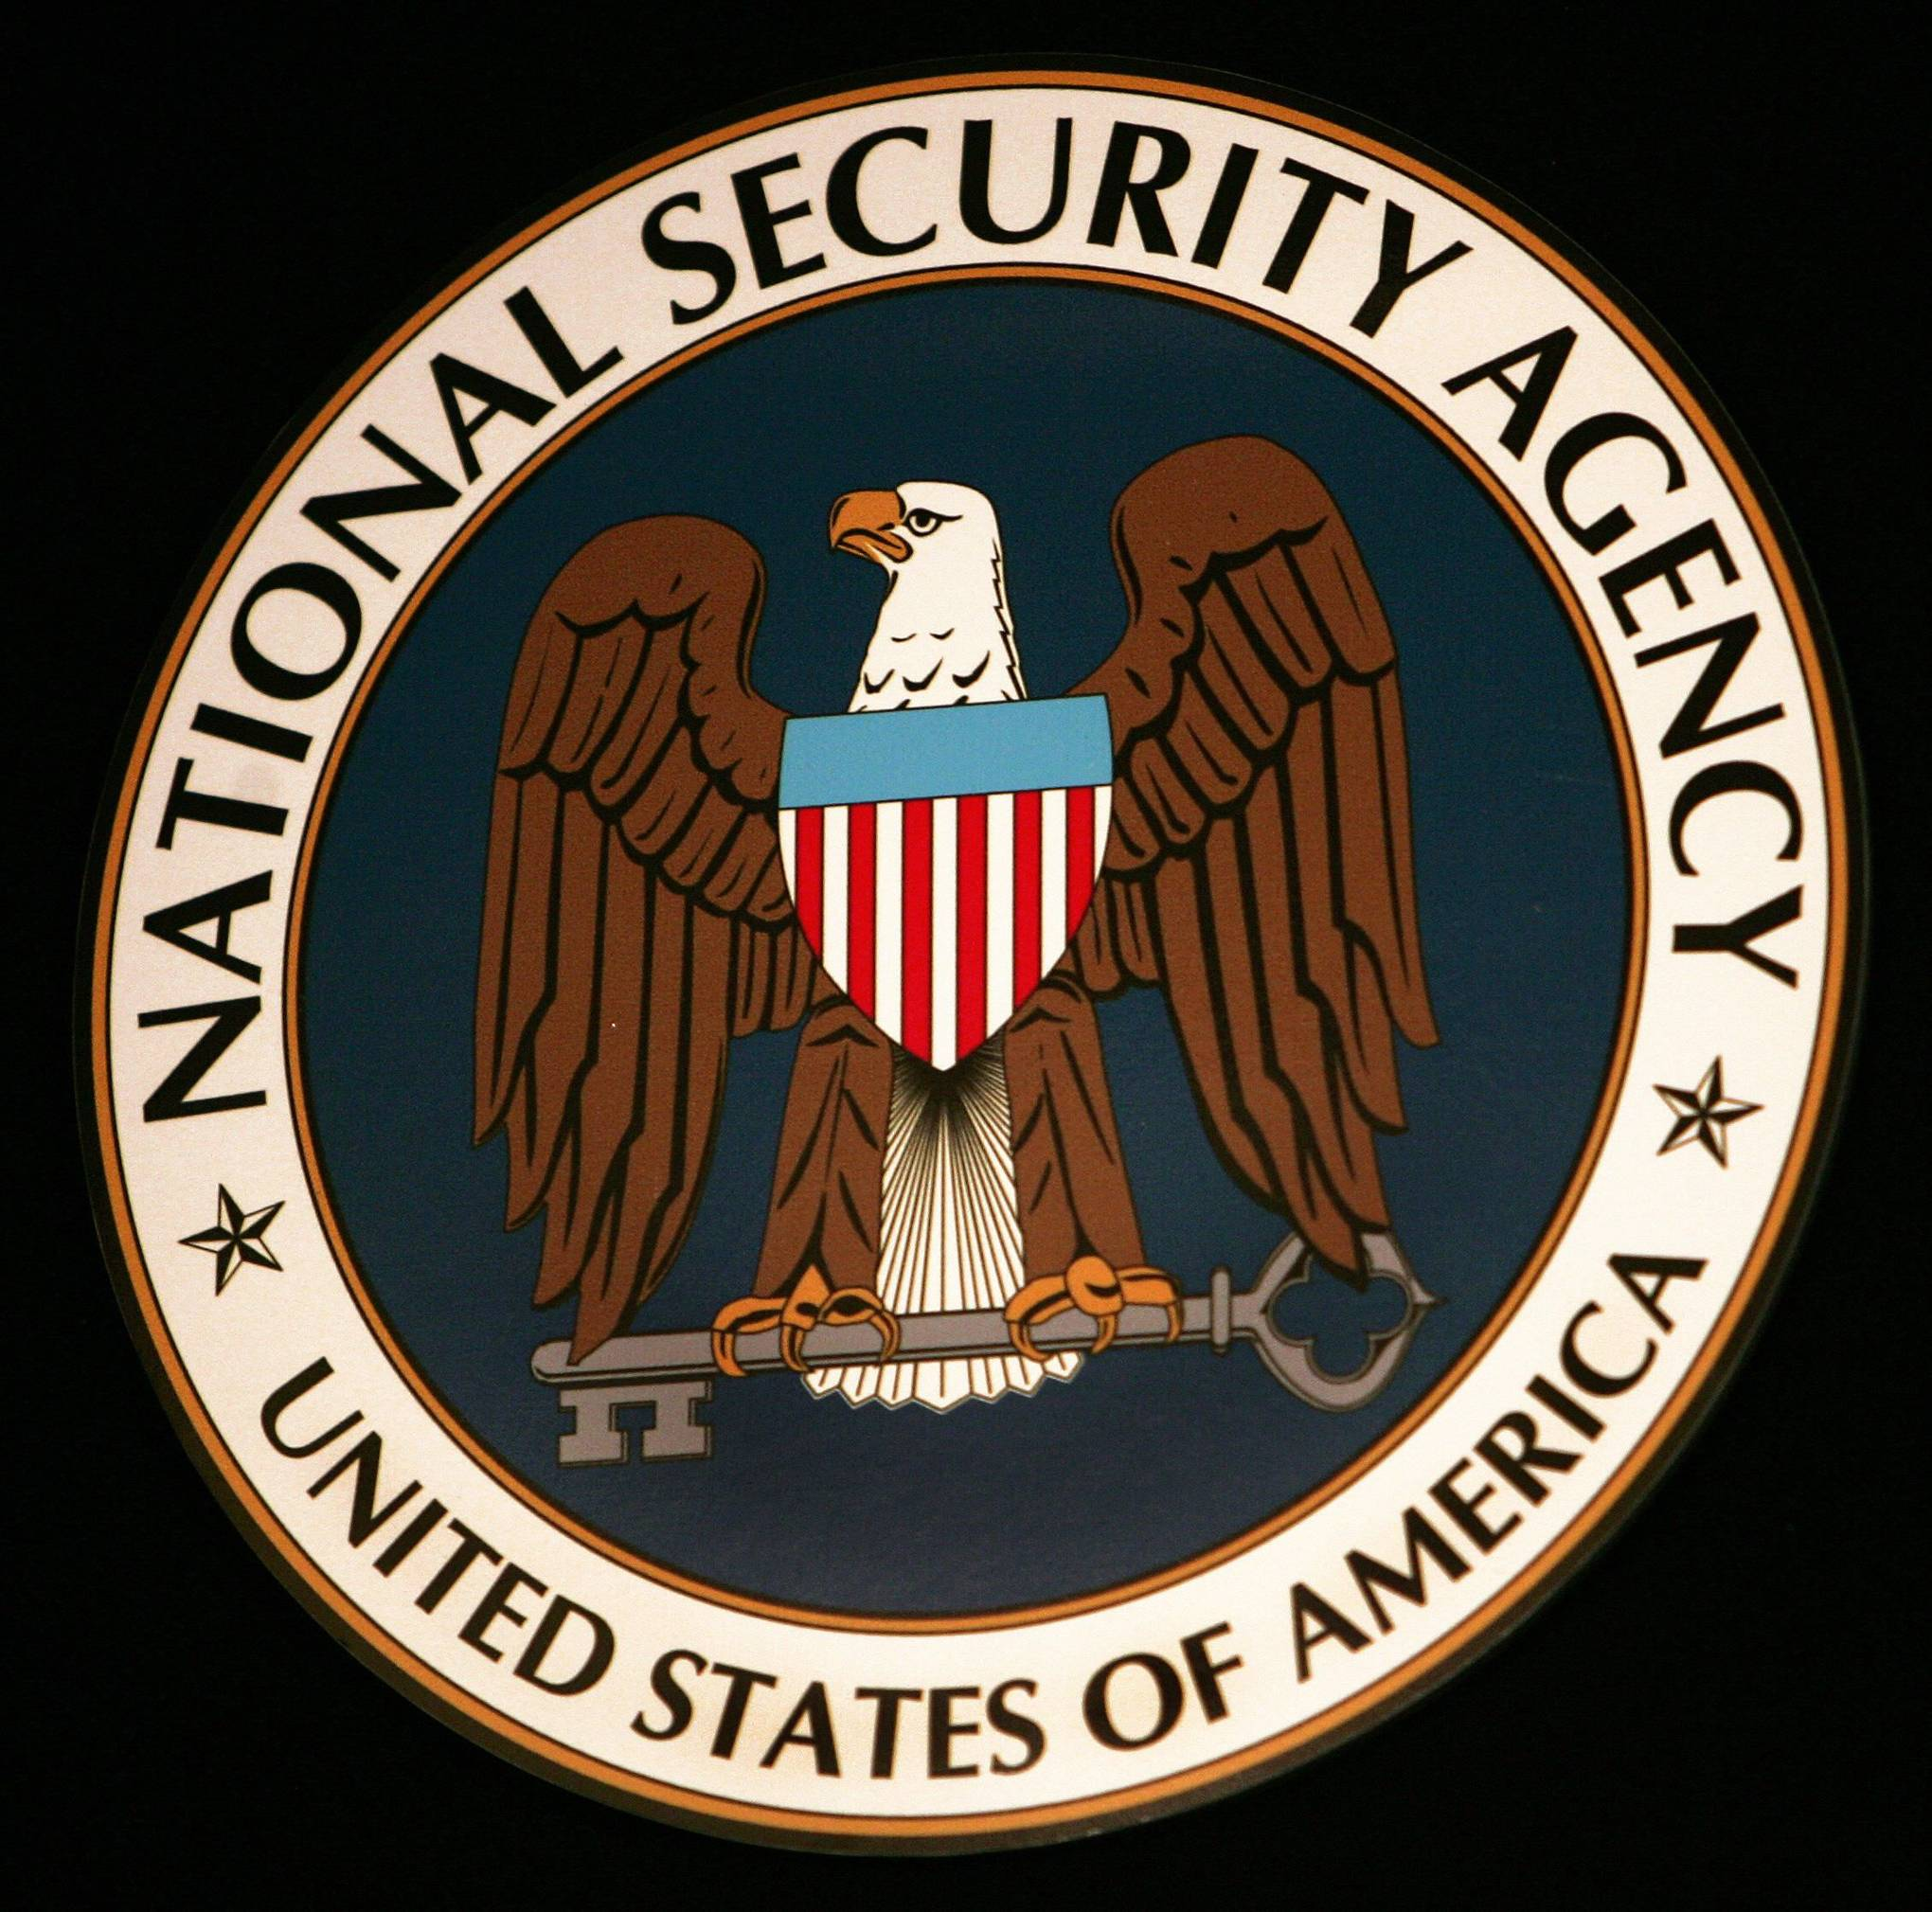 NSA, the Shadow Brokers and Snowden: Inside the NSA hacking